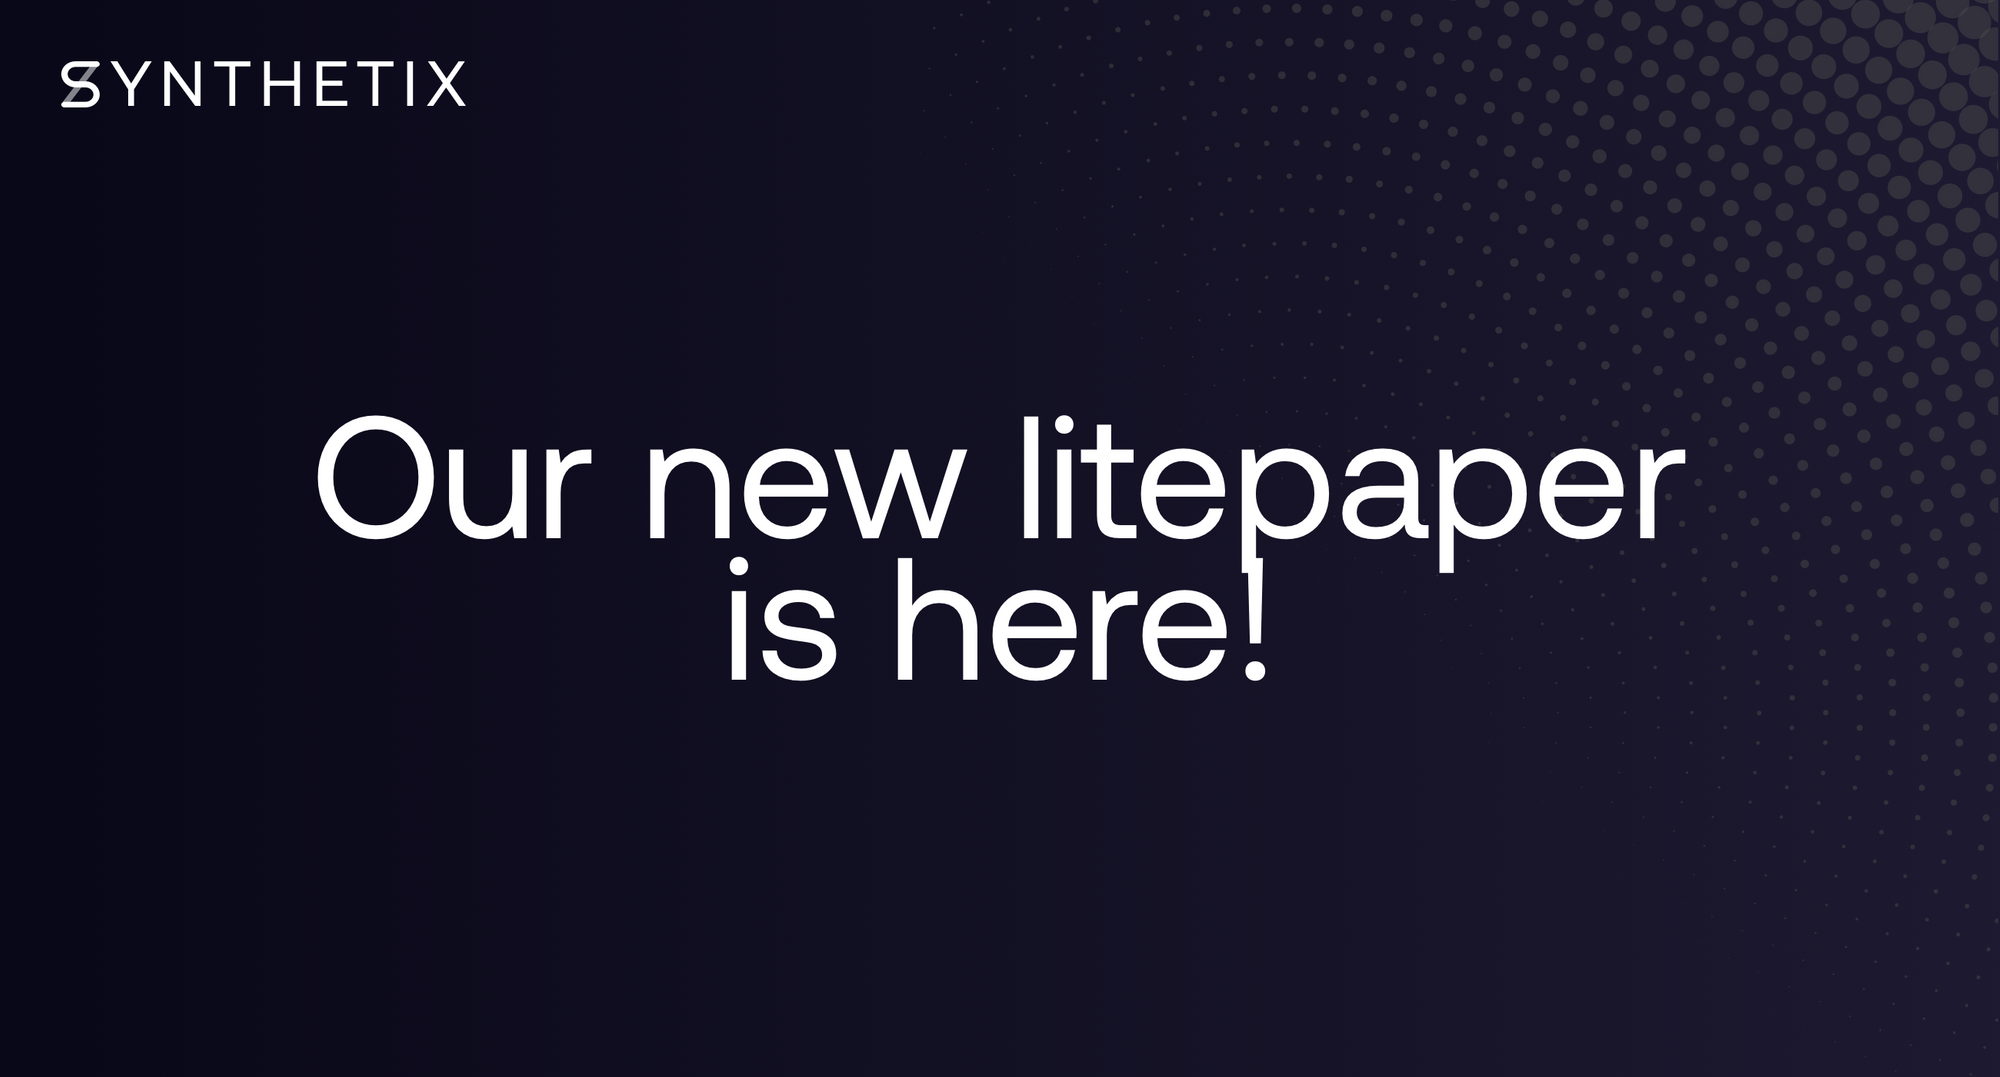 Check out the new Synthetix litepaper!